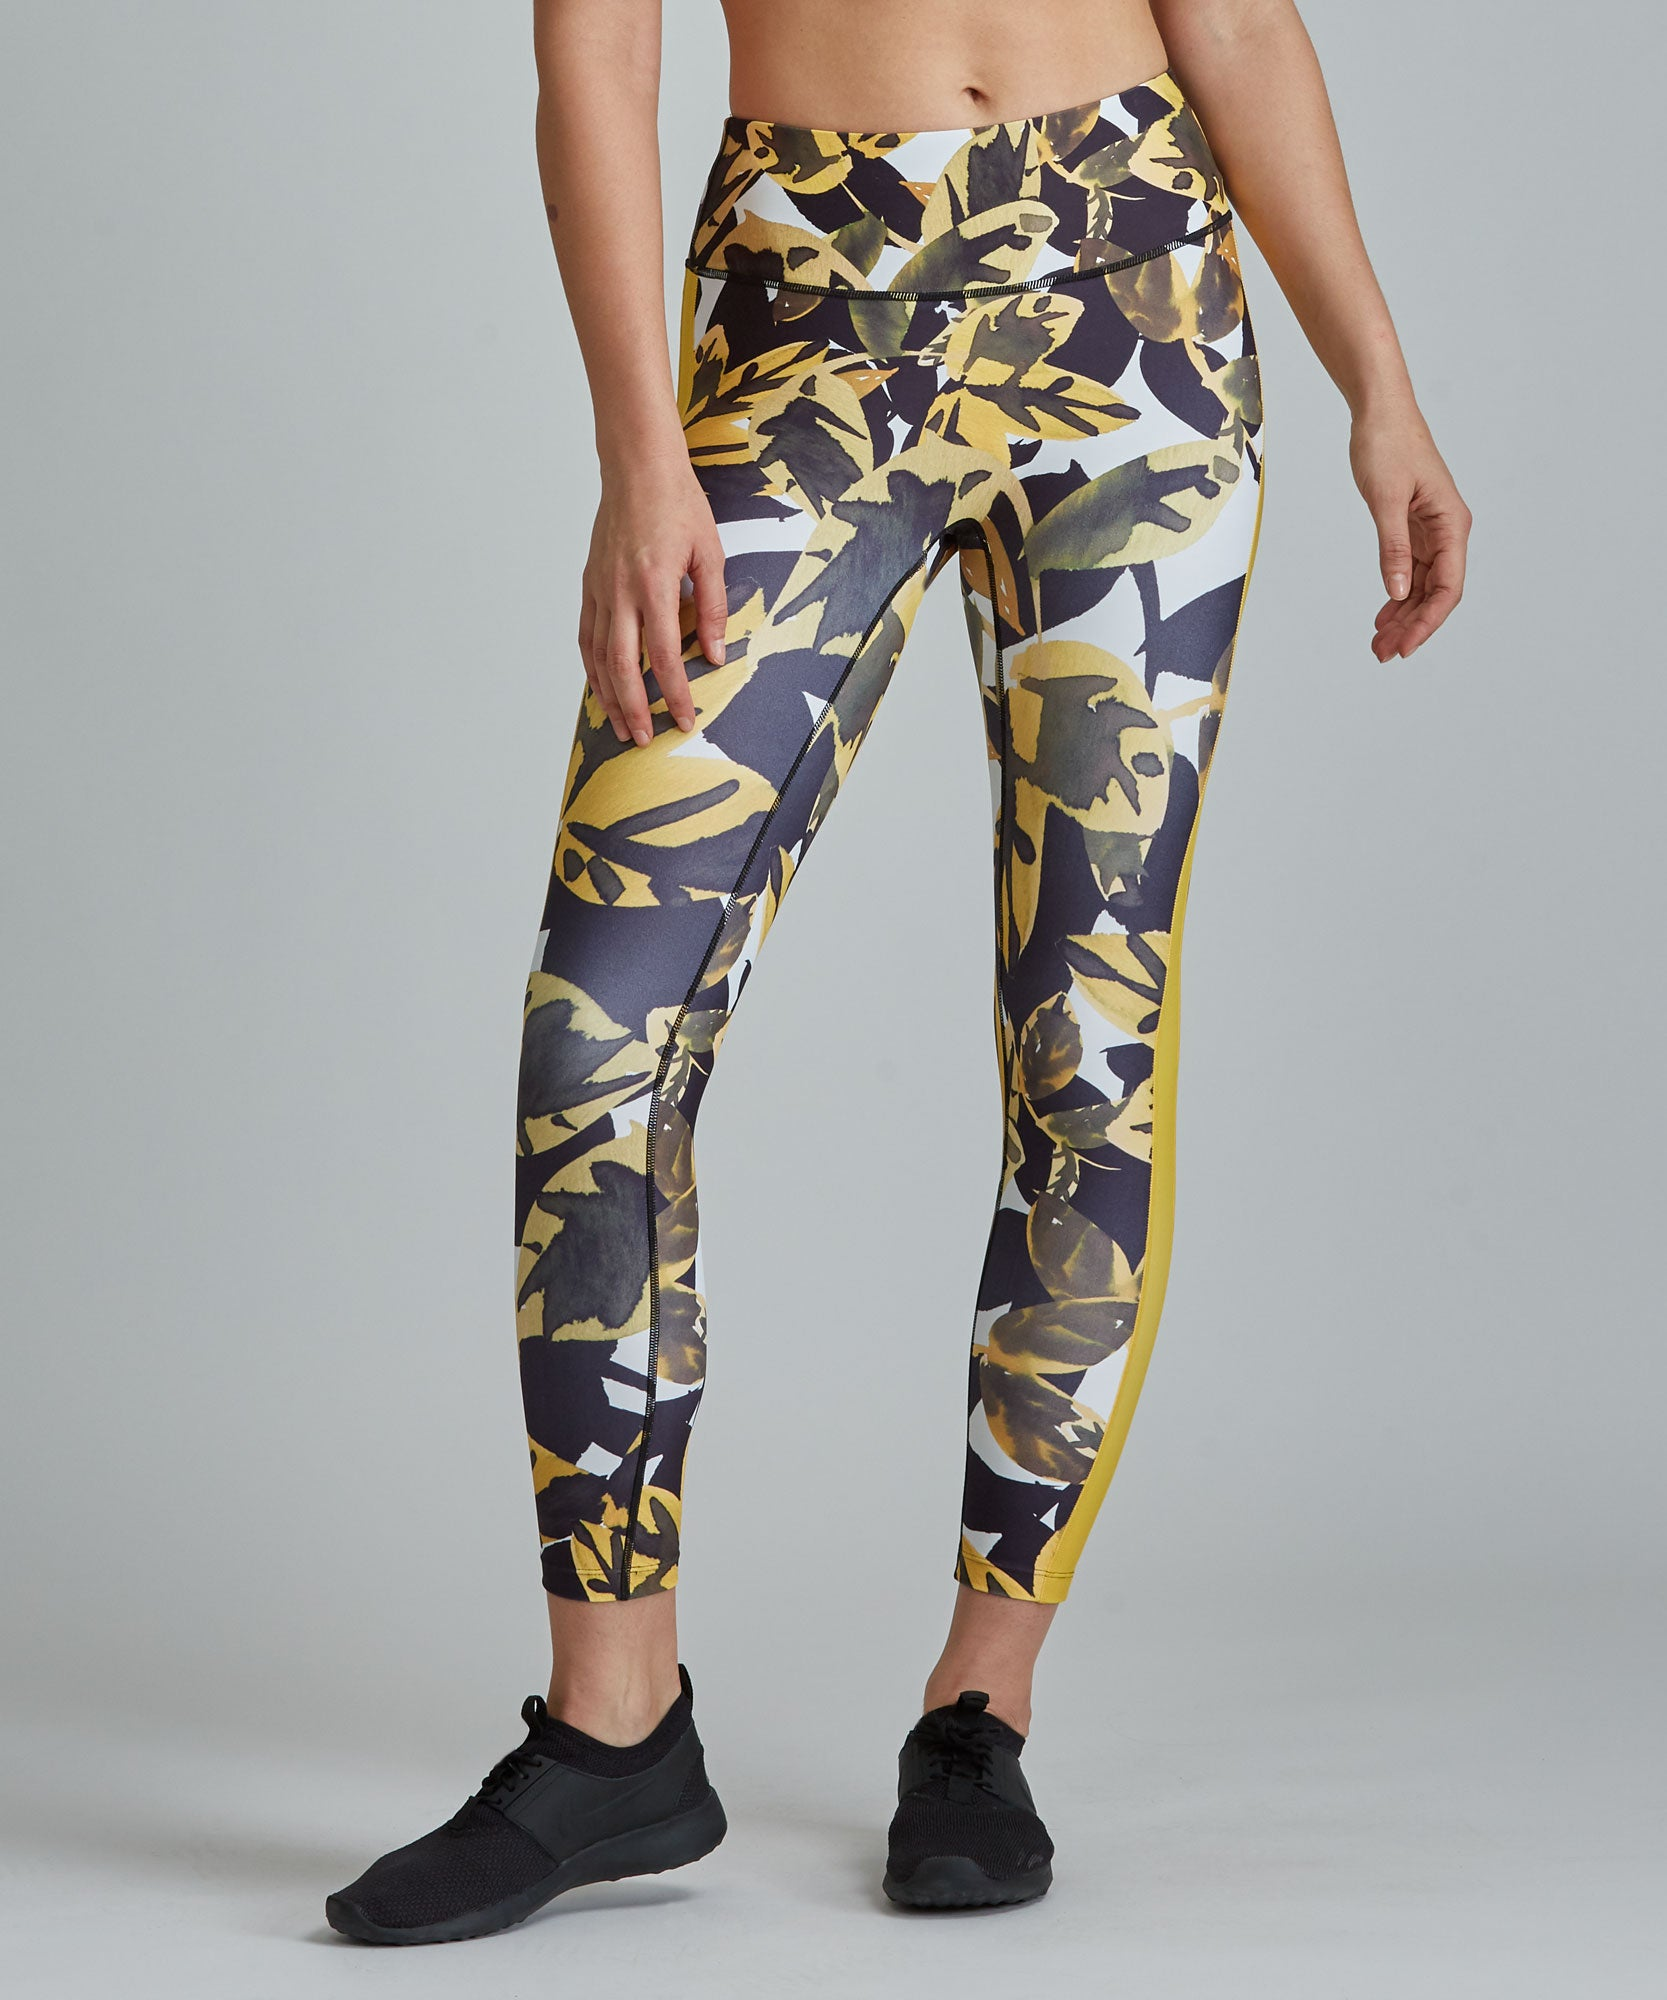 Hi-Waist Barre 7/8 Legging - Autumn Leaves